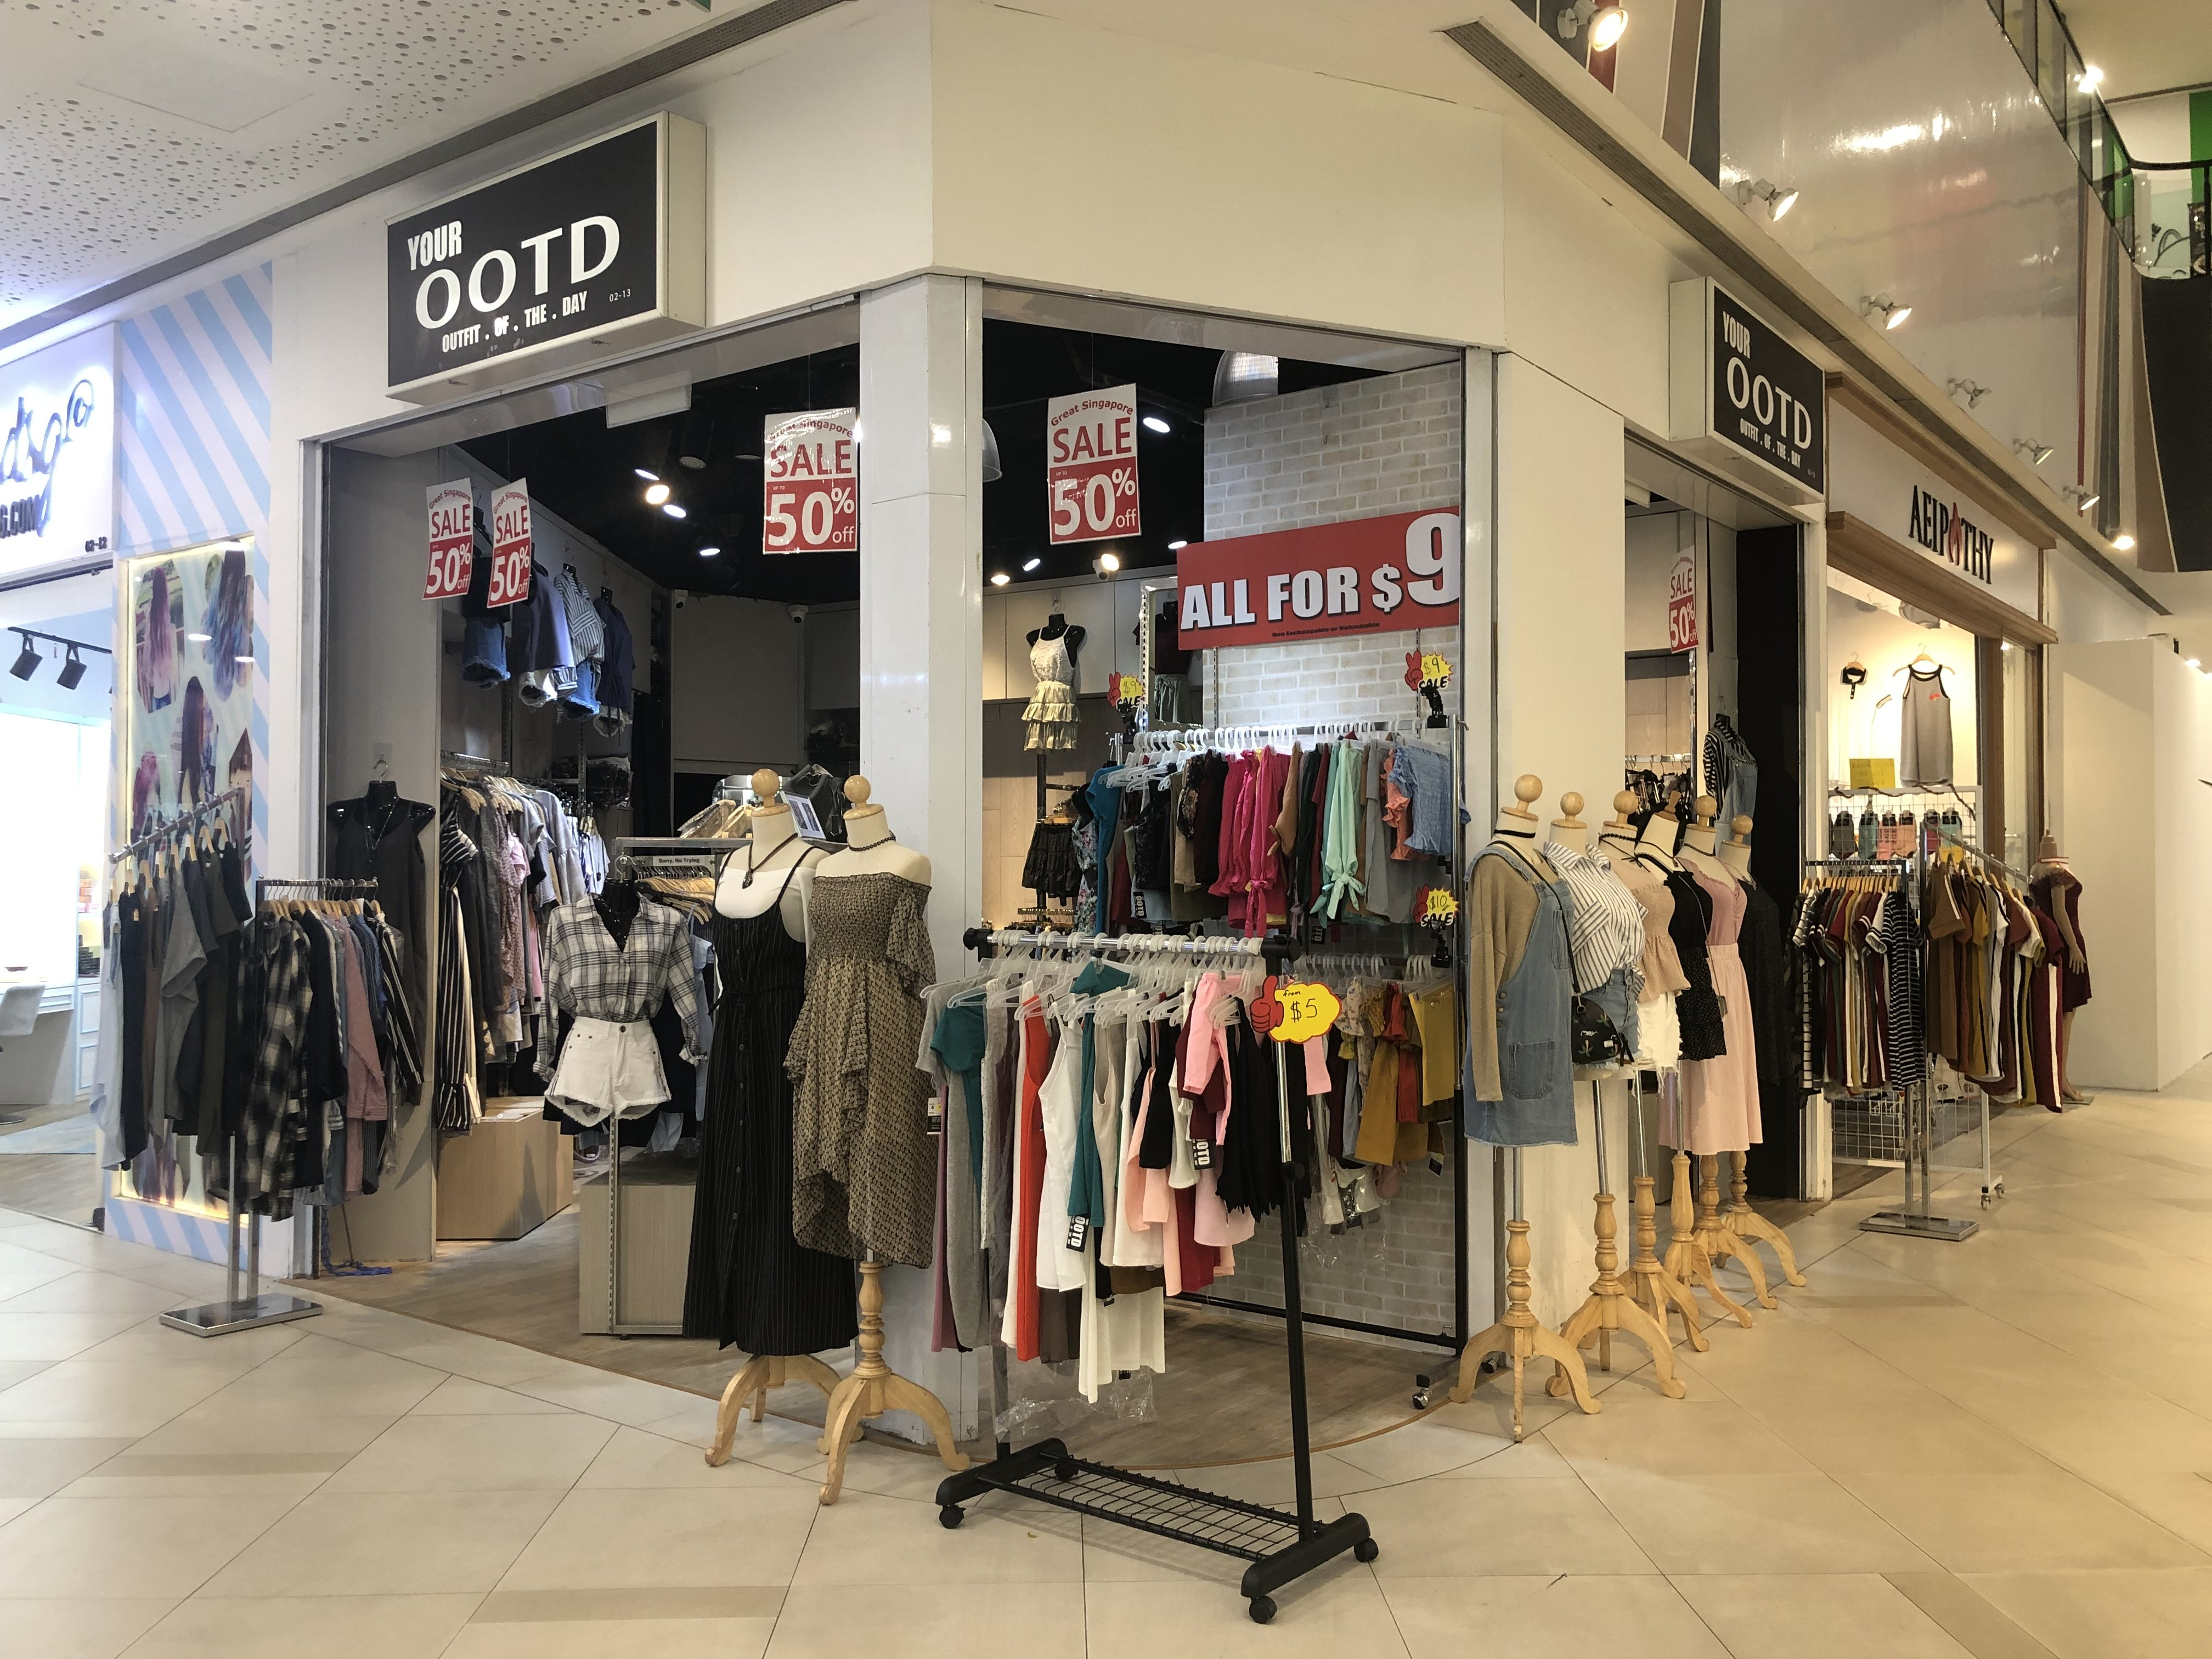 Shops at SCAPE selling clothes